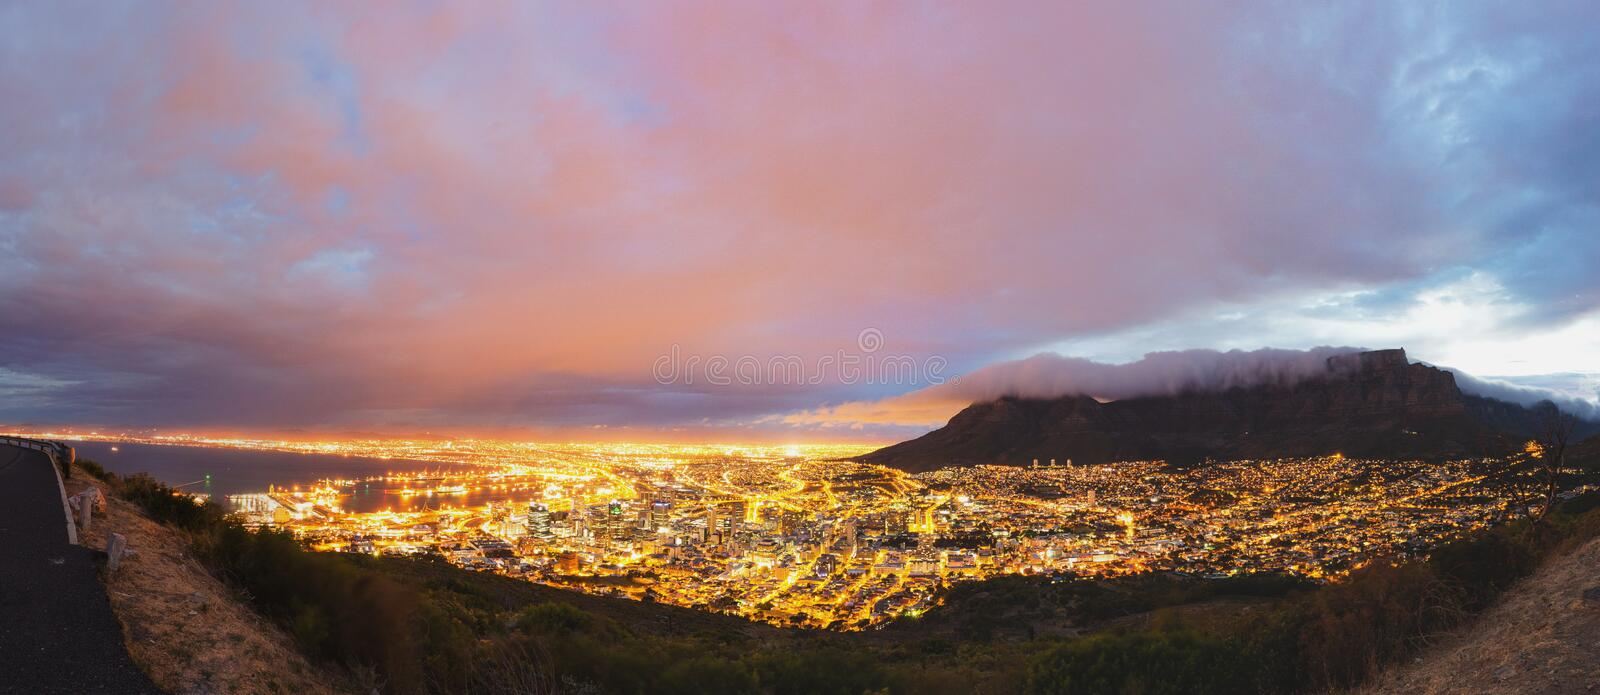 Cape Town and Table Mountain panorama. South Africa stock image